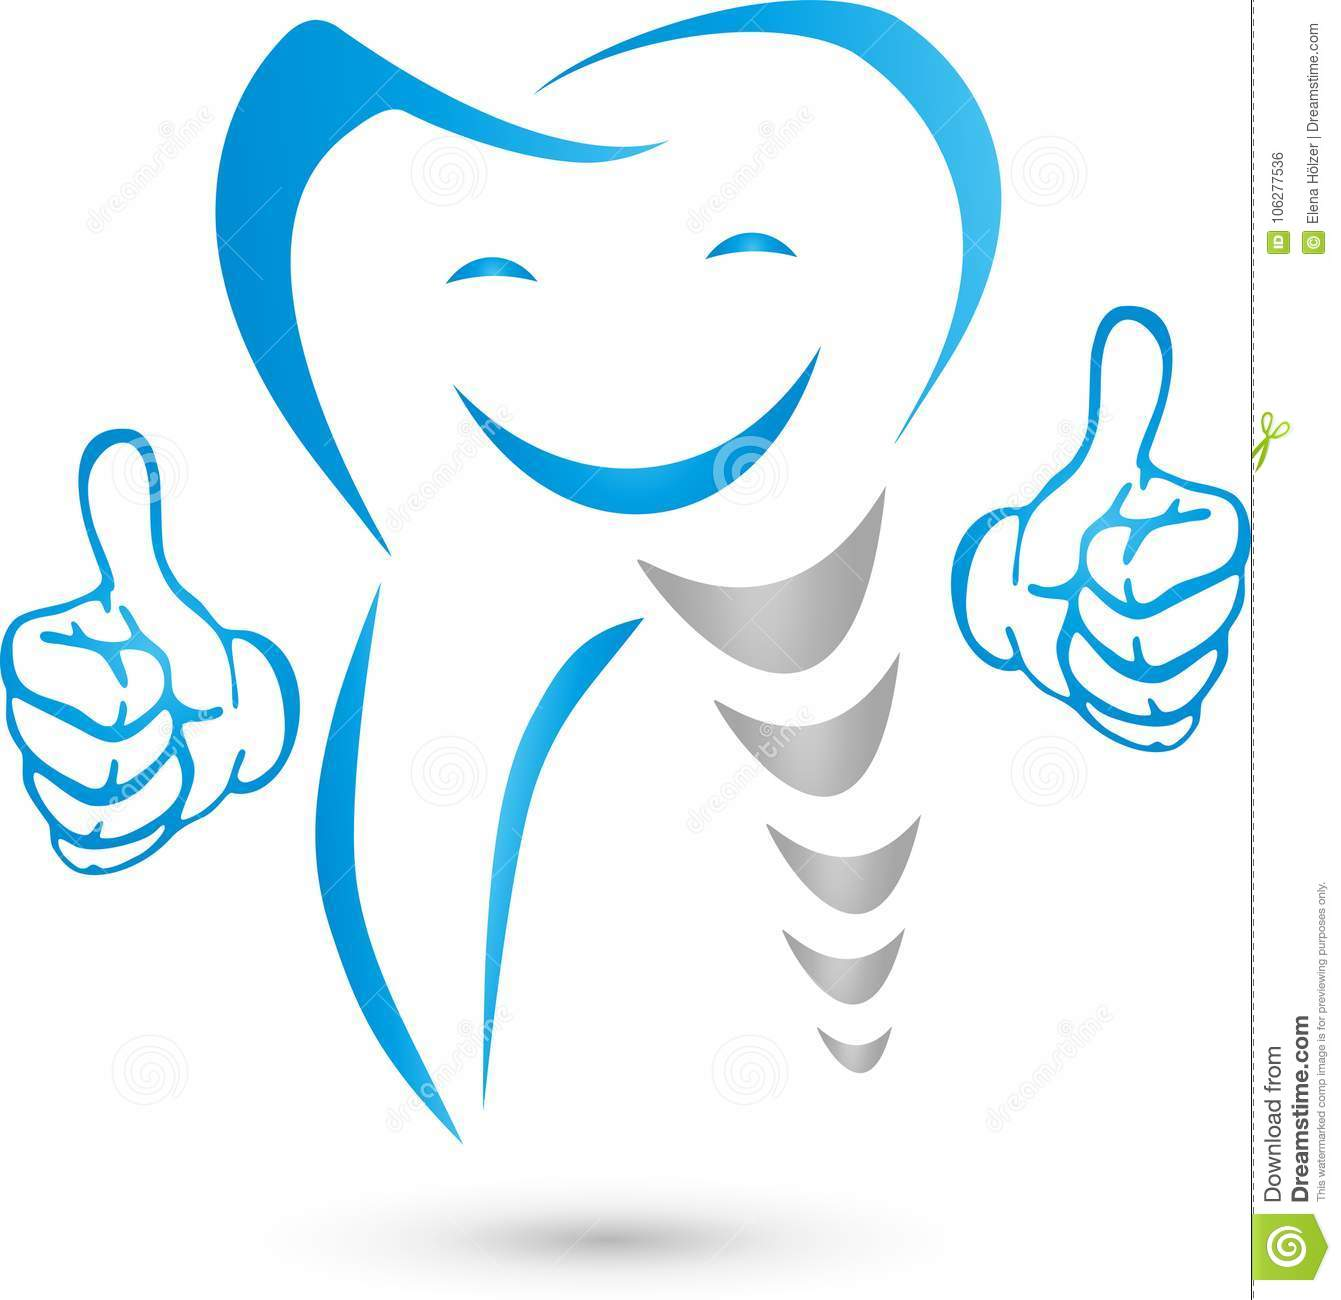 Tooth With Hands And Smile Teeth And Dentist Logo Stock Vector Illustration Of Holding Crowns 106277536